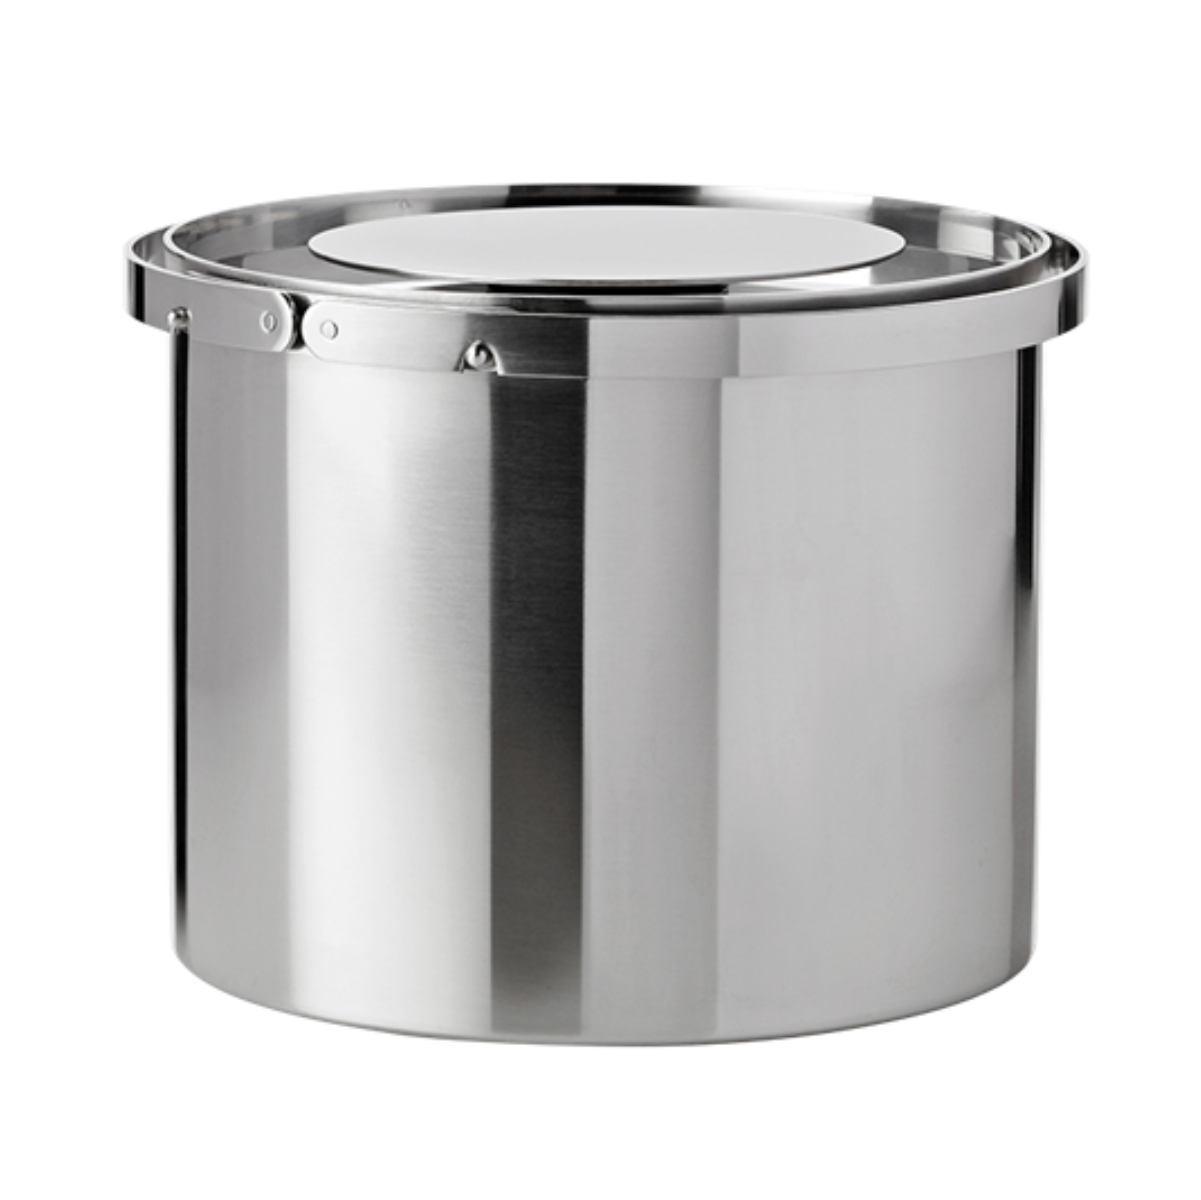 Stelton Arne Jacob ice bucket 2,5L